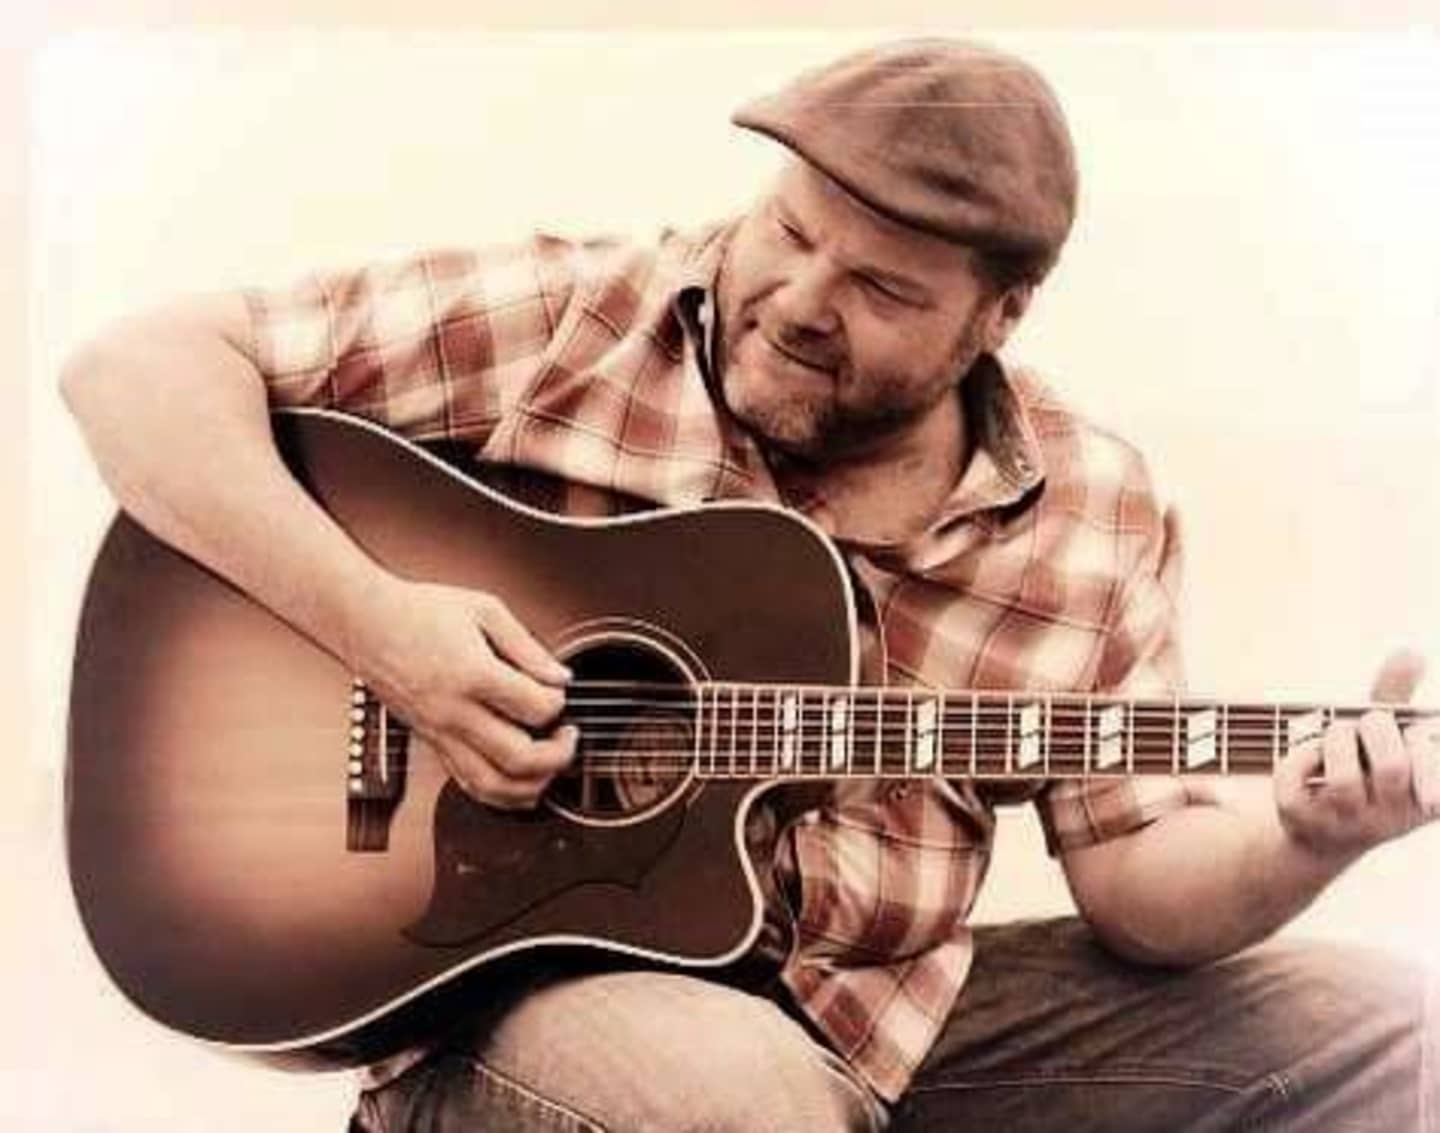 Saturday, July 28th Live Music with Leroy